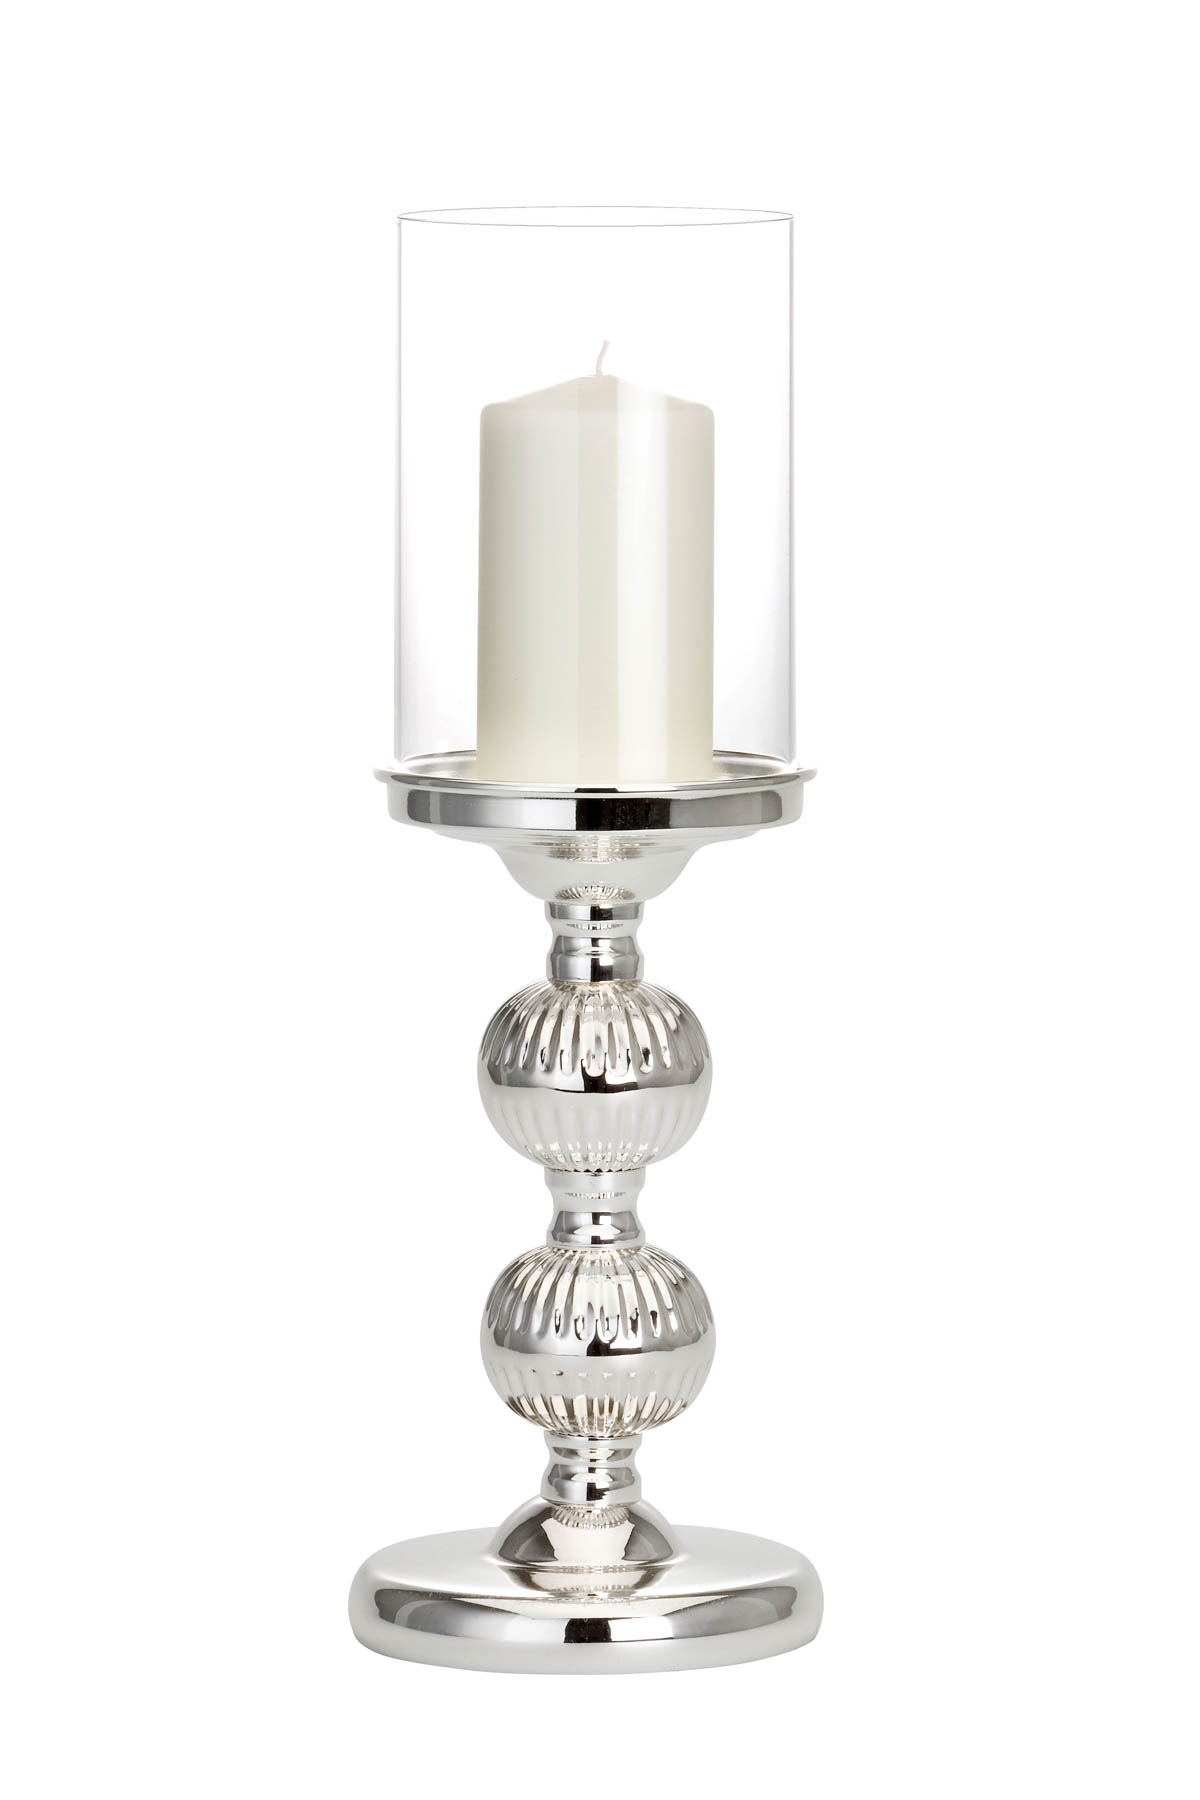 Lantern / Candle Stick  2 pieces 30 & 36 cm silver-plated